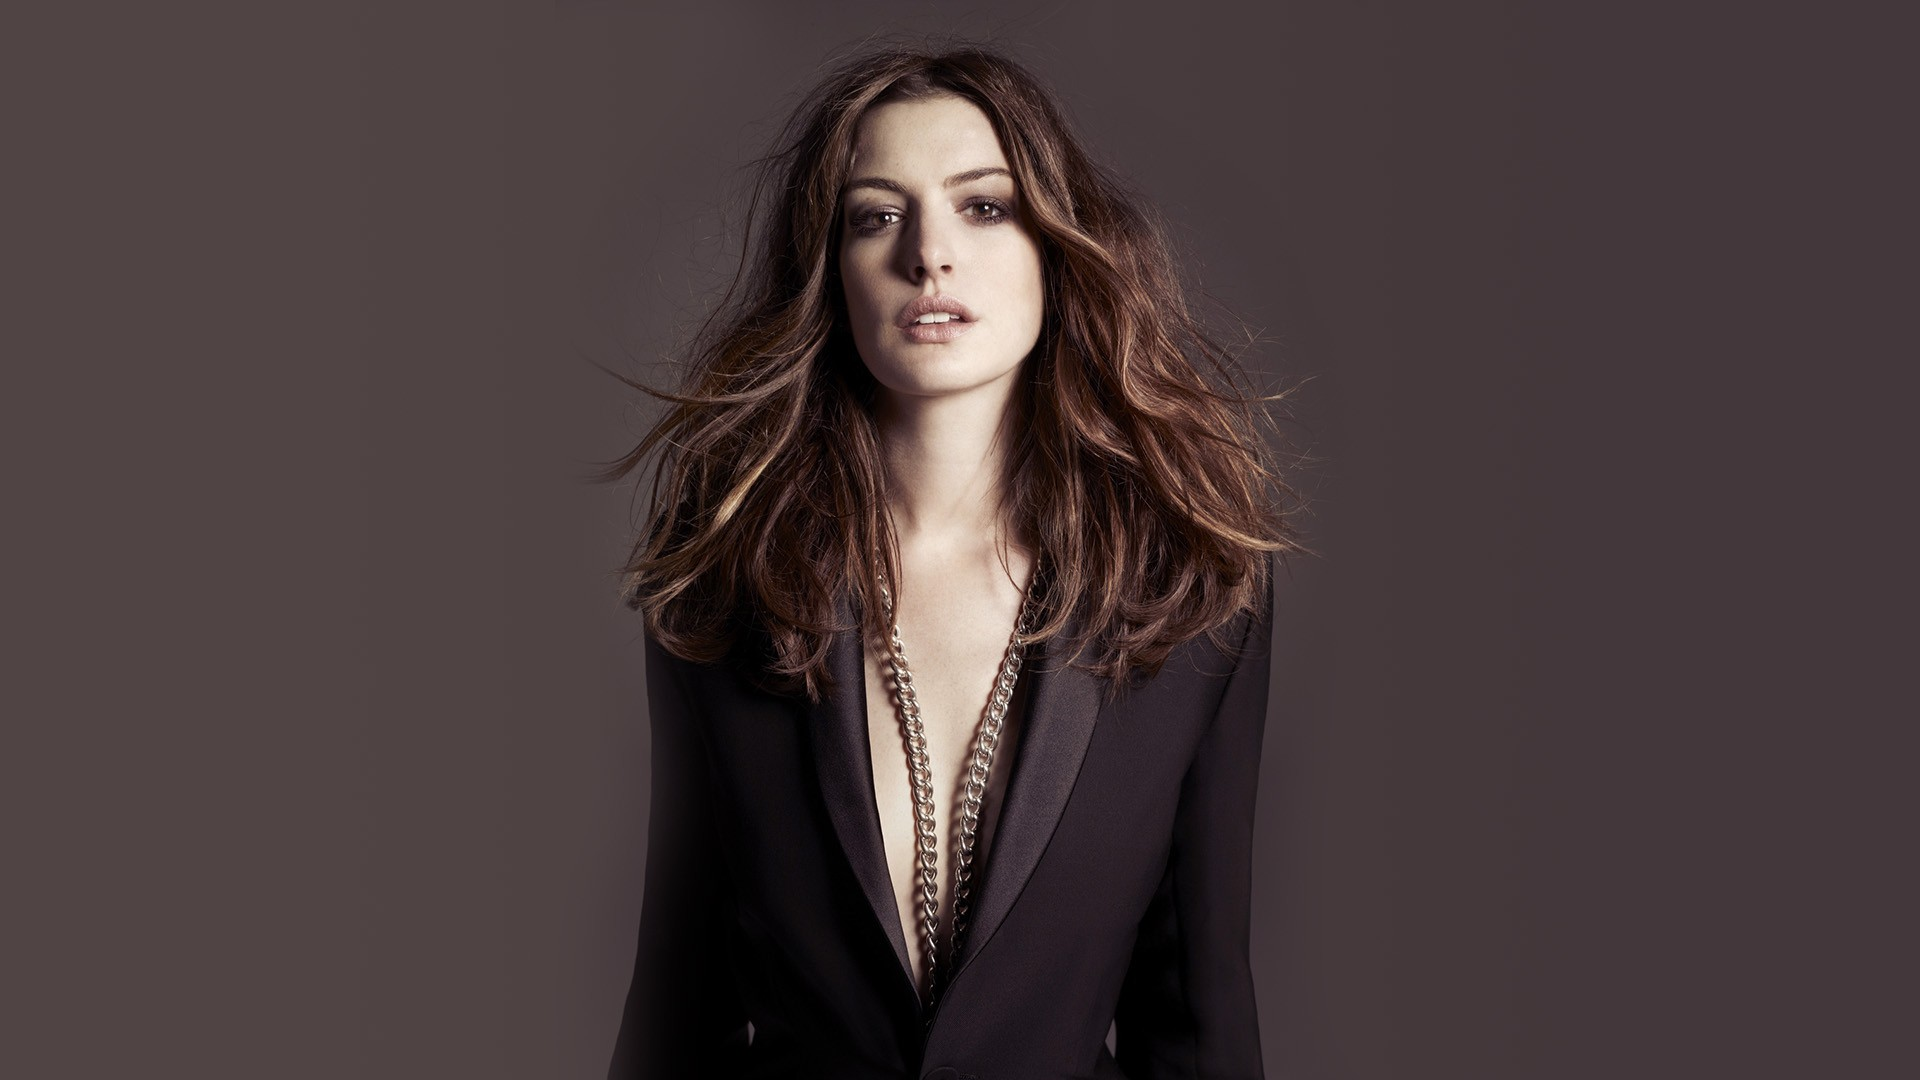 Danielle Panabaker Hd Wallpapers Anne Hathaway Hd Wallpapers Popopics Com